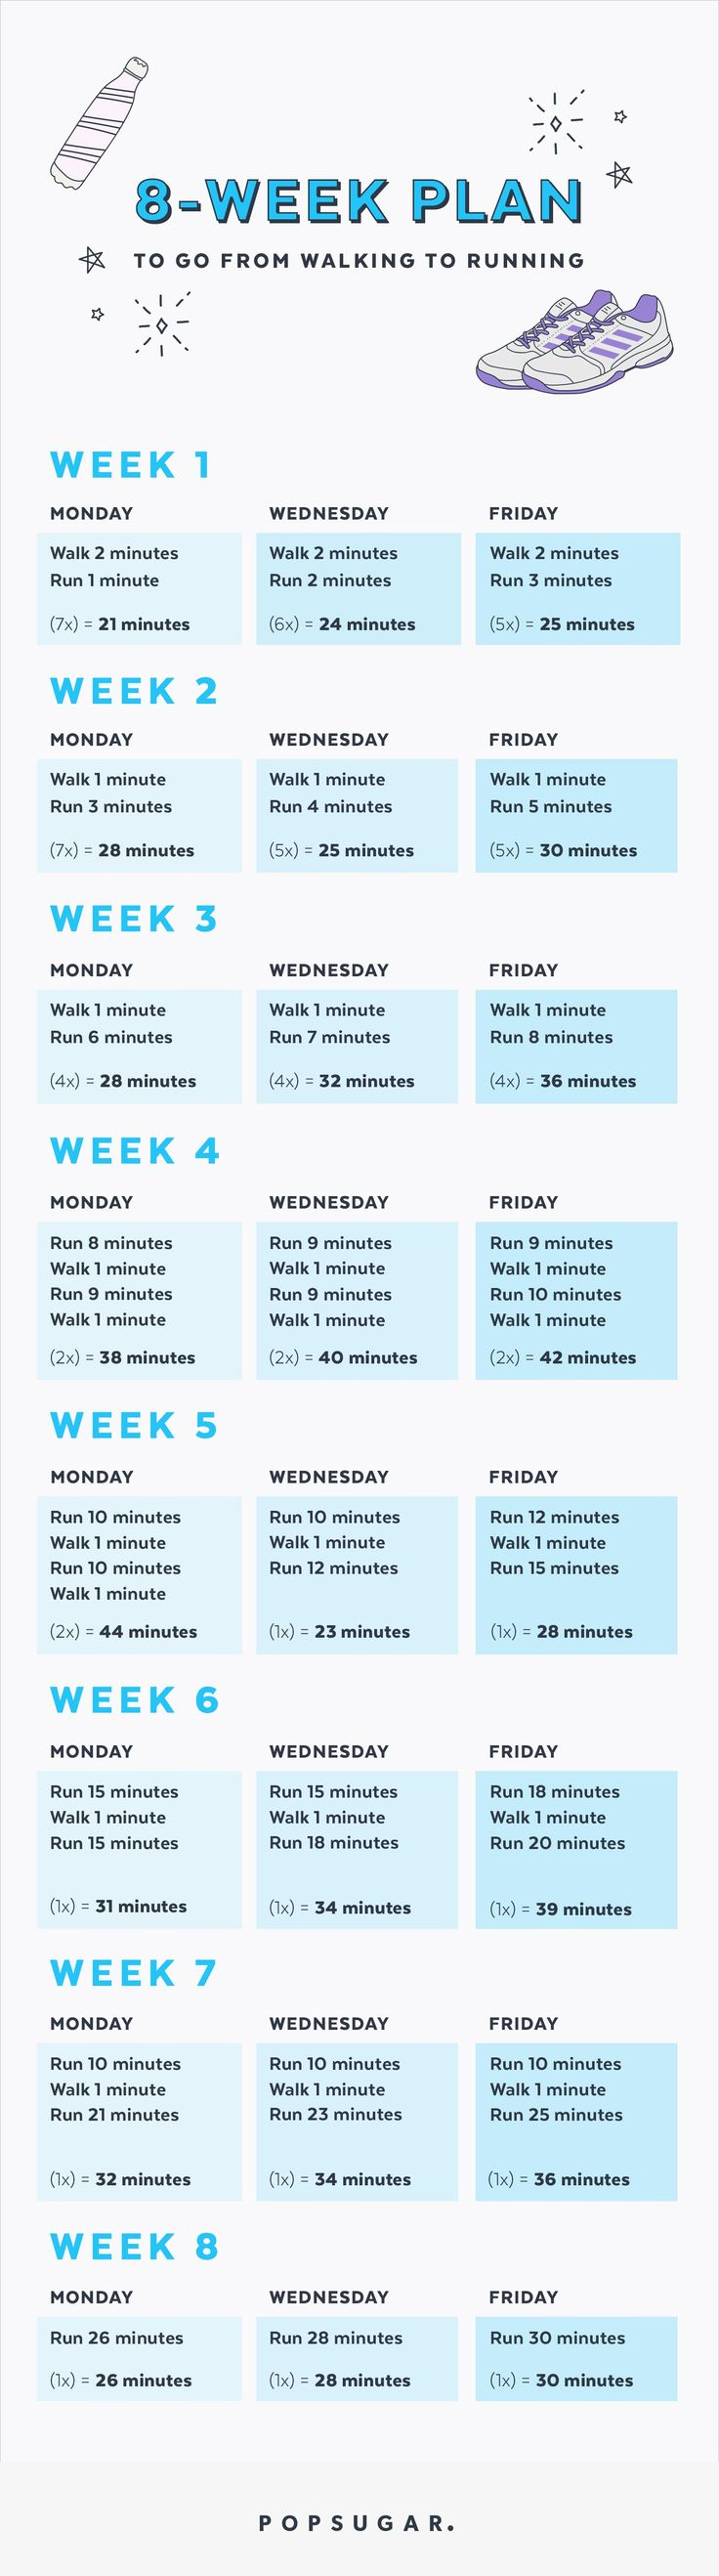 If I had a treadmill, I would do this. An 8-Week Plan to Make You a Runner